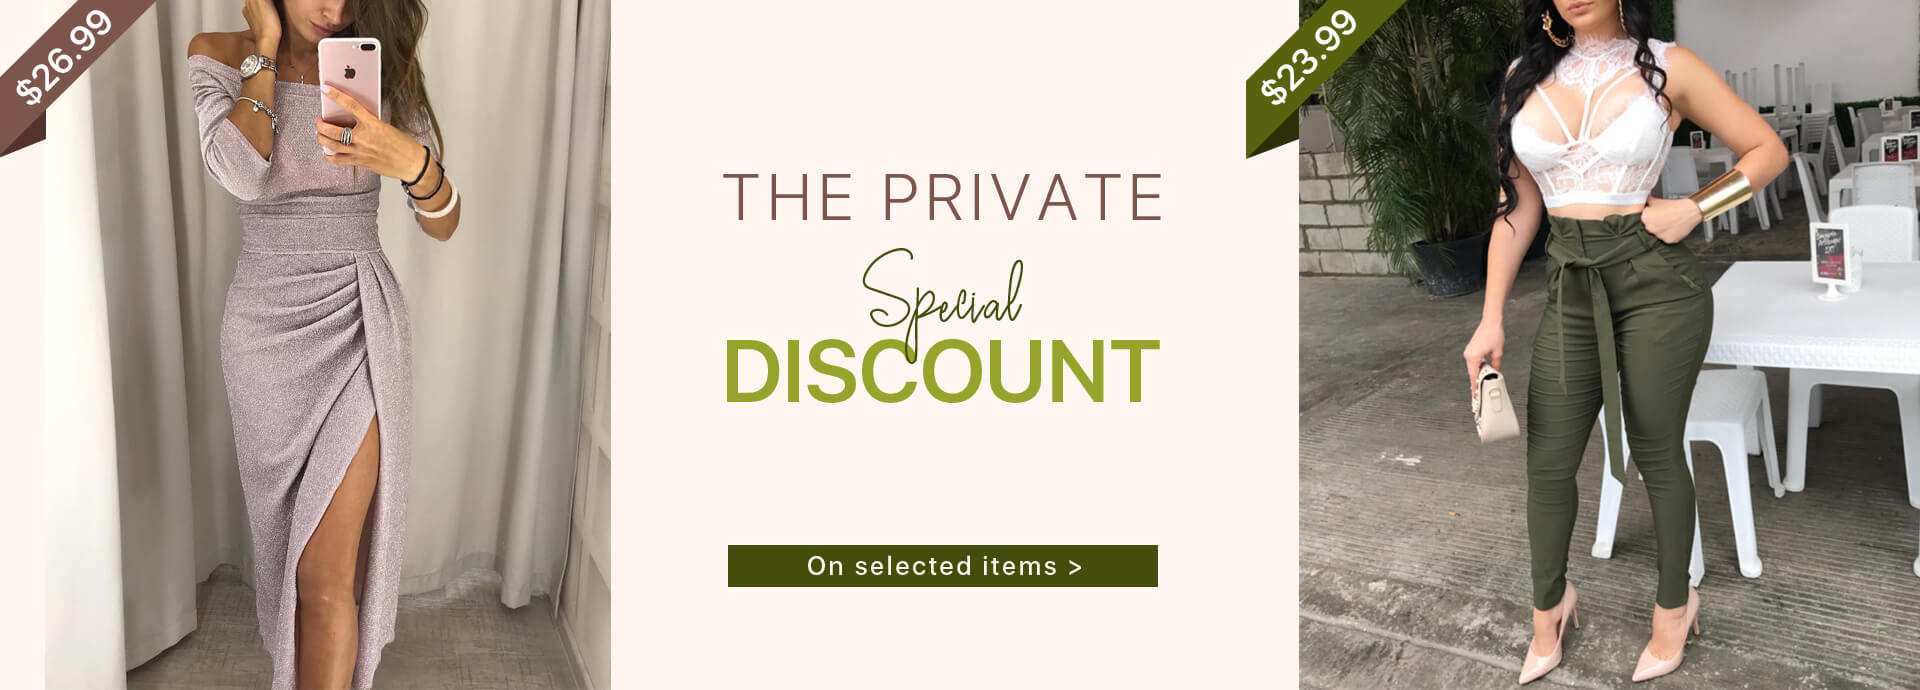 The Private Special Discount